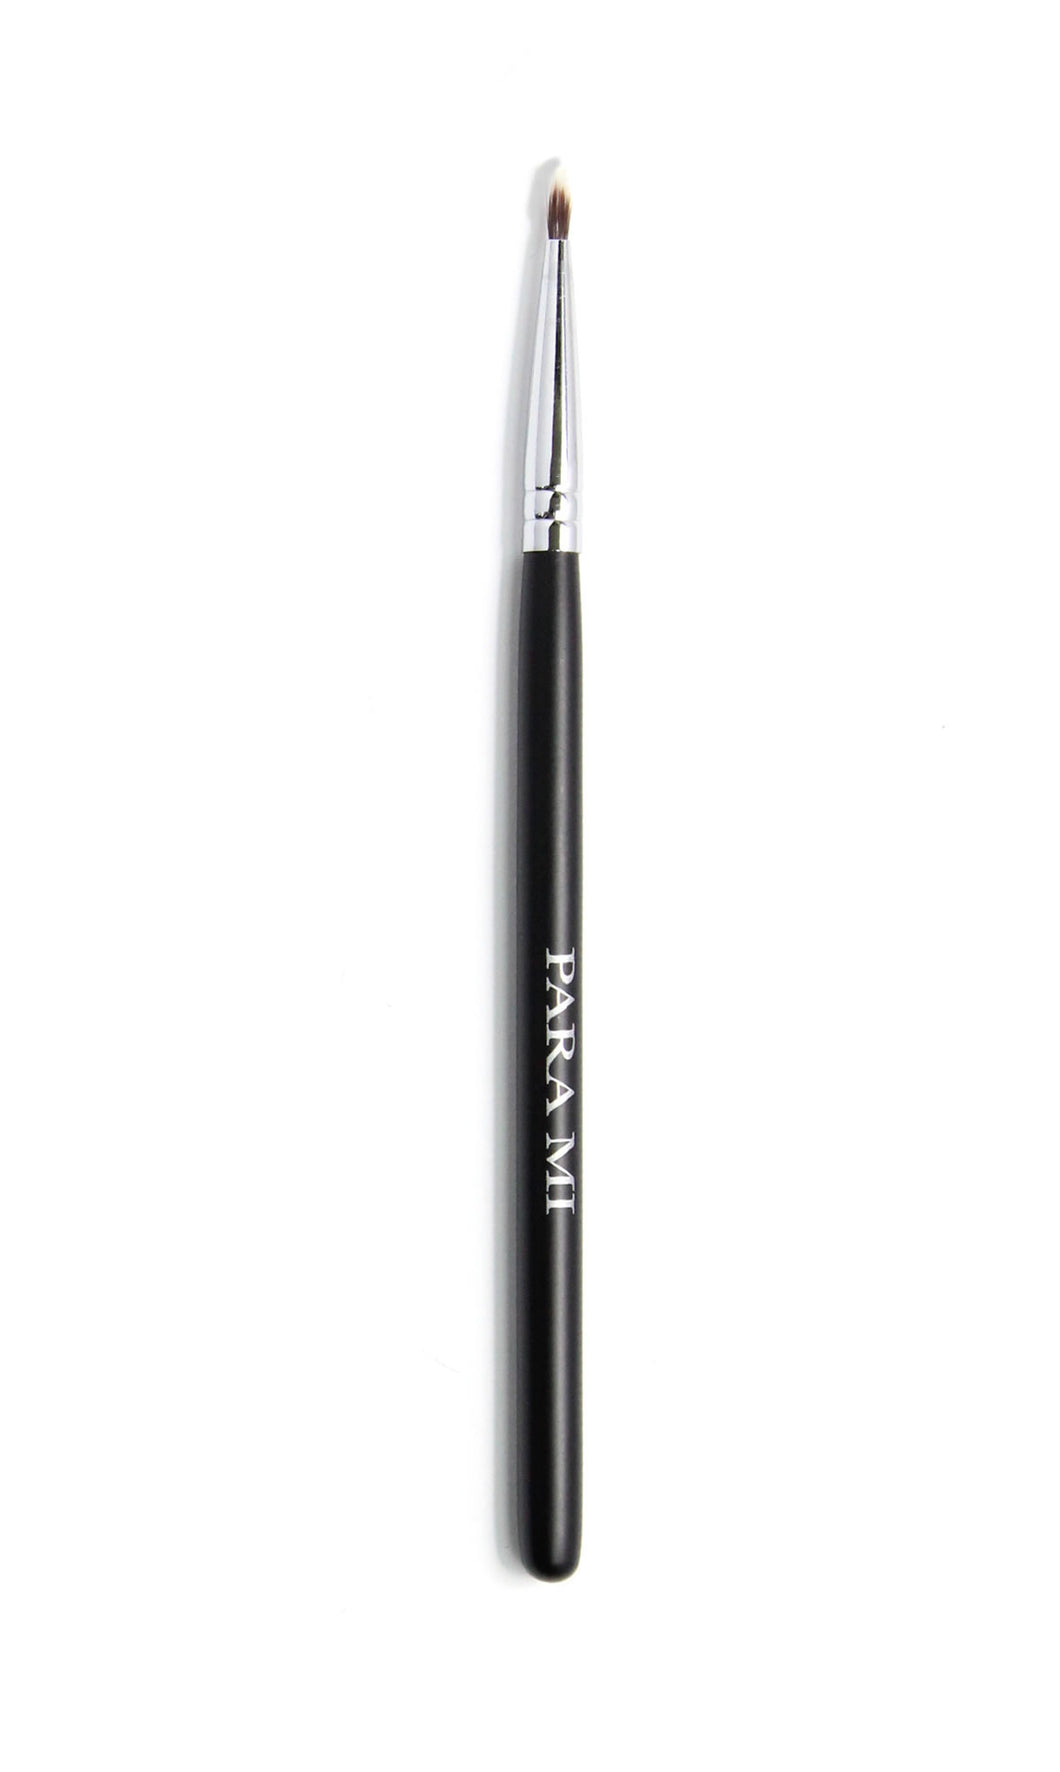 Fine Liner Brush 323, a black and chrome brush, about 10 inches long  with the PARA MI logo printed on the handle.